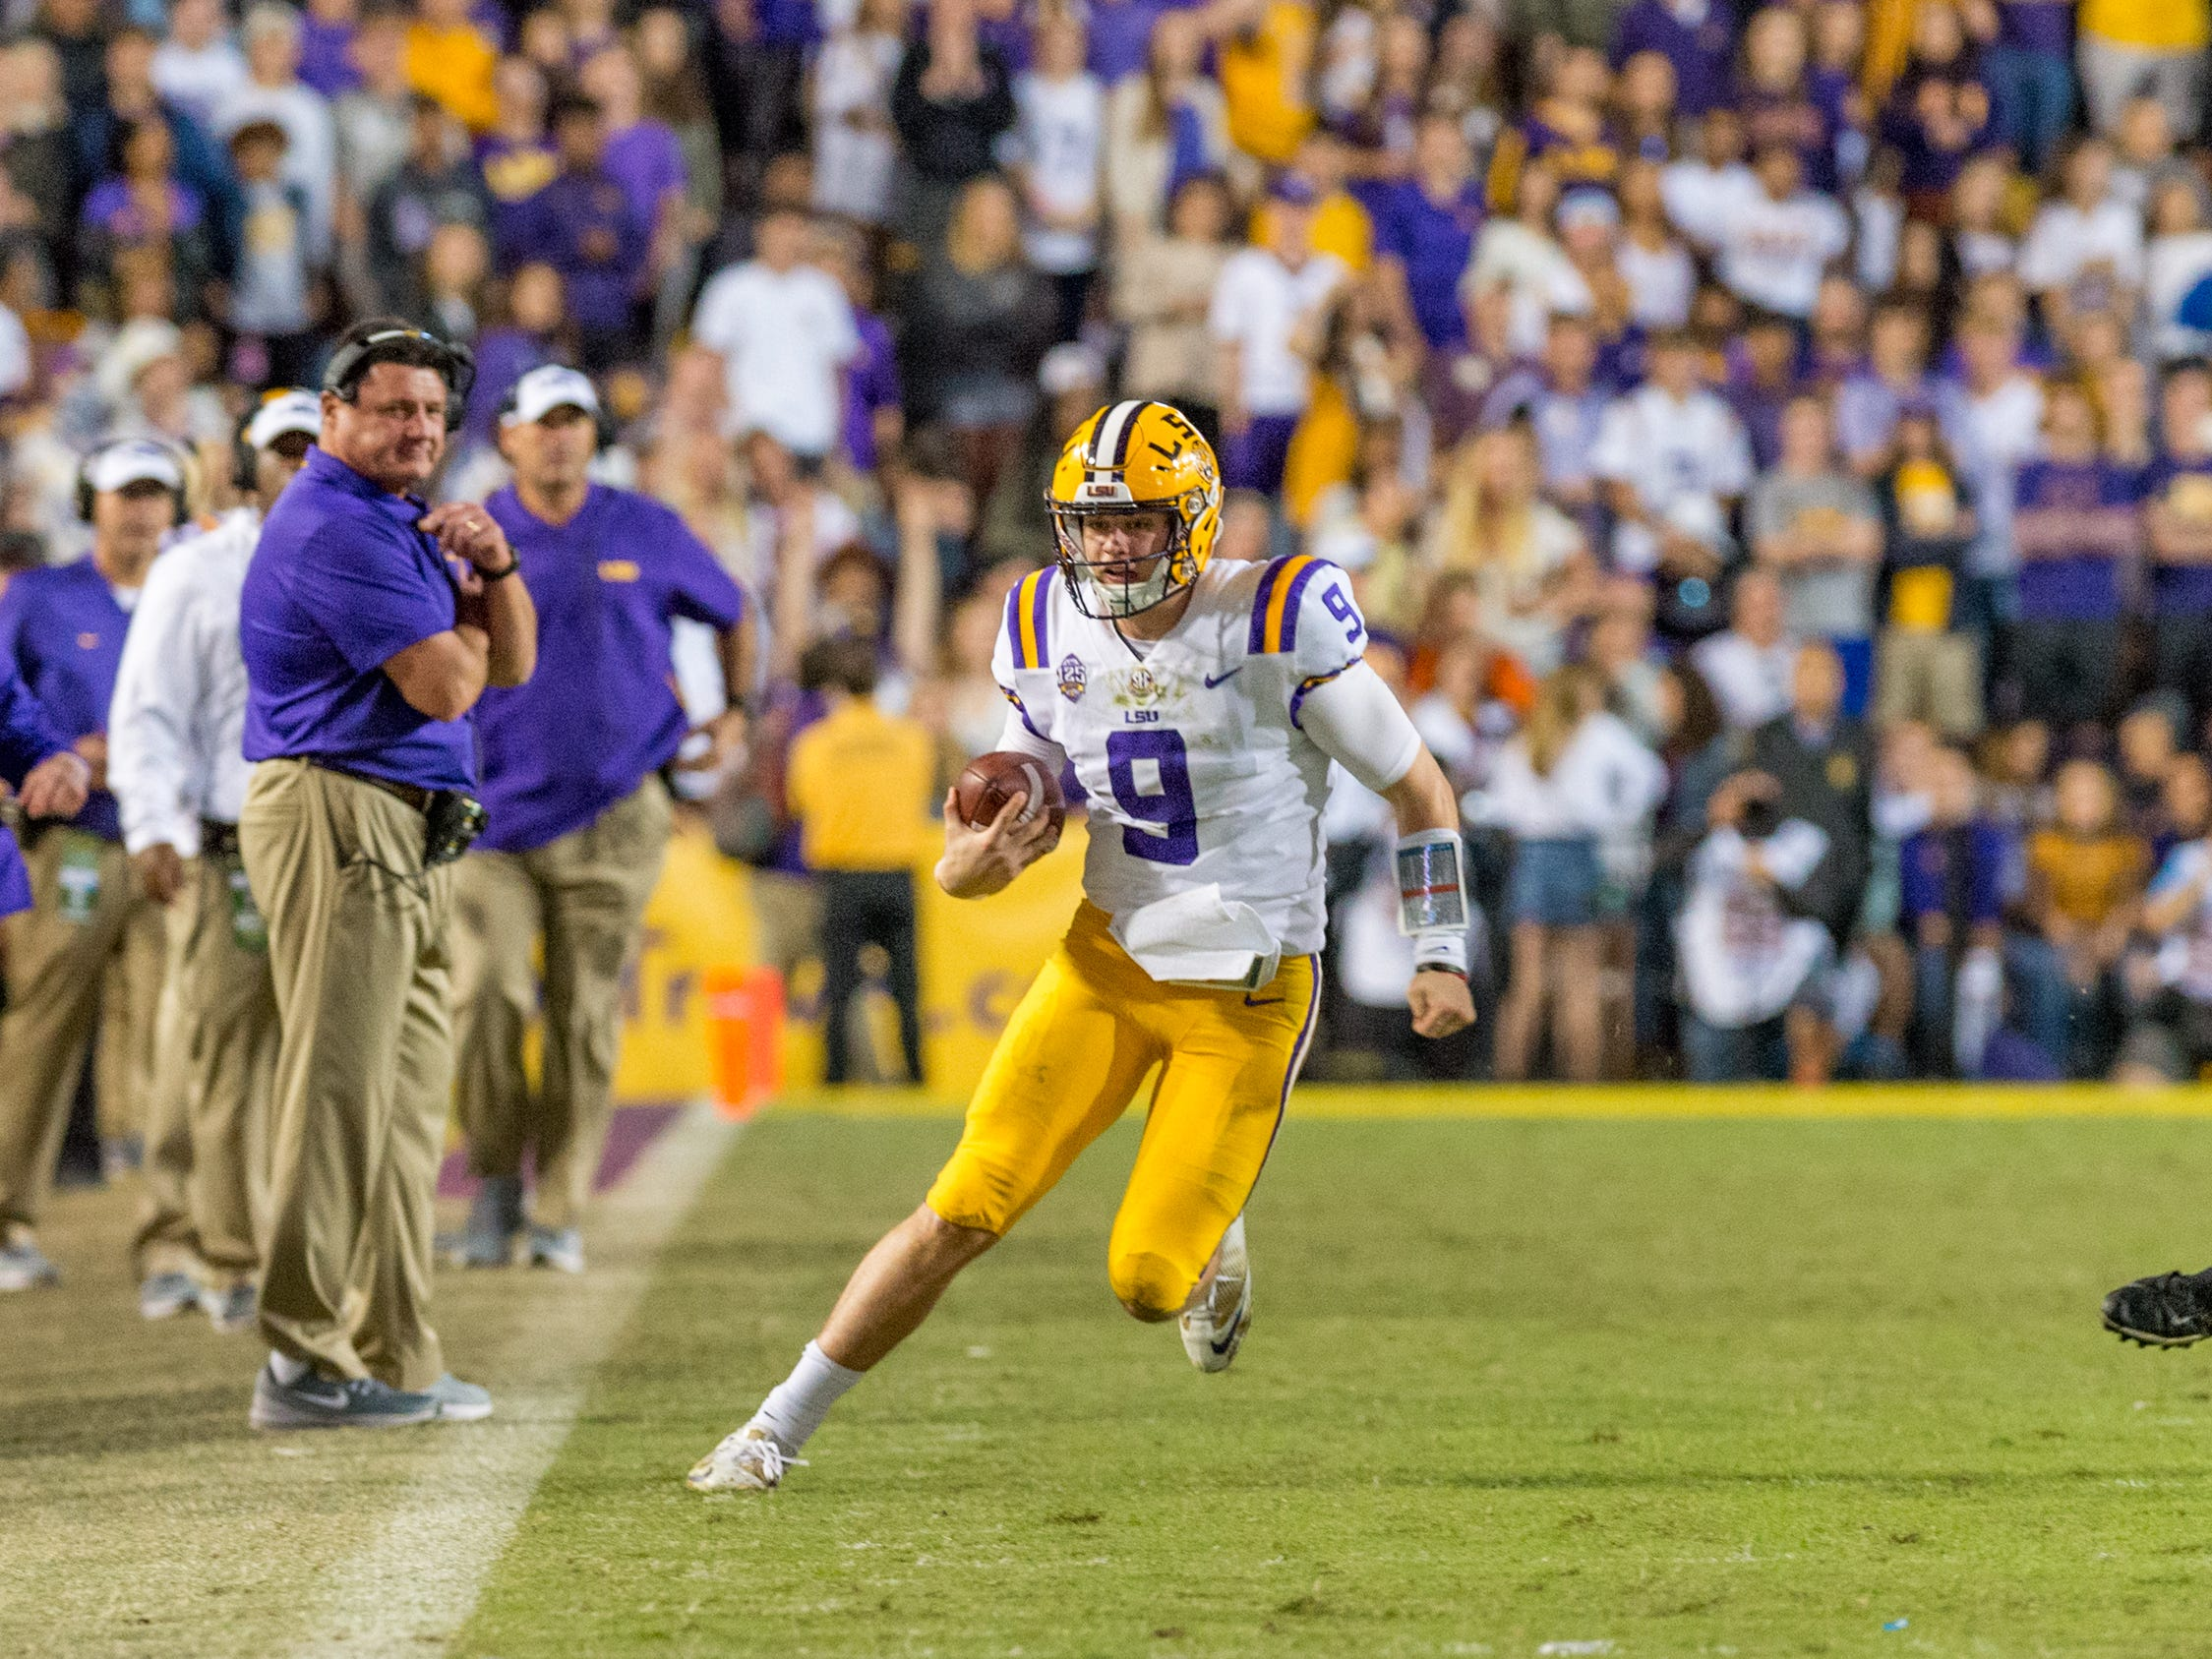 Tigers quarterback is chased out of bounds by lineman Raekwon Davis as The #4 LSU Tigers take on the #1 ranked Alabama Crimson Tide in Tiger Stadium. Saturday, Nov. 3, 2018.